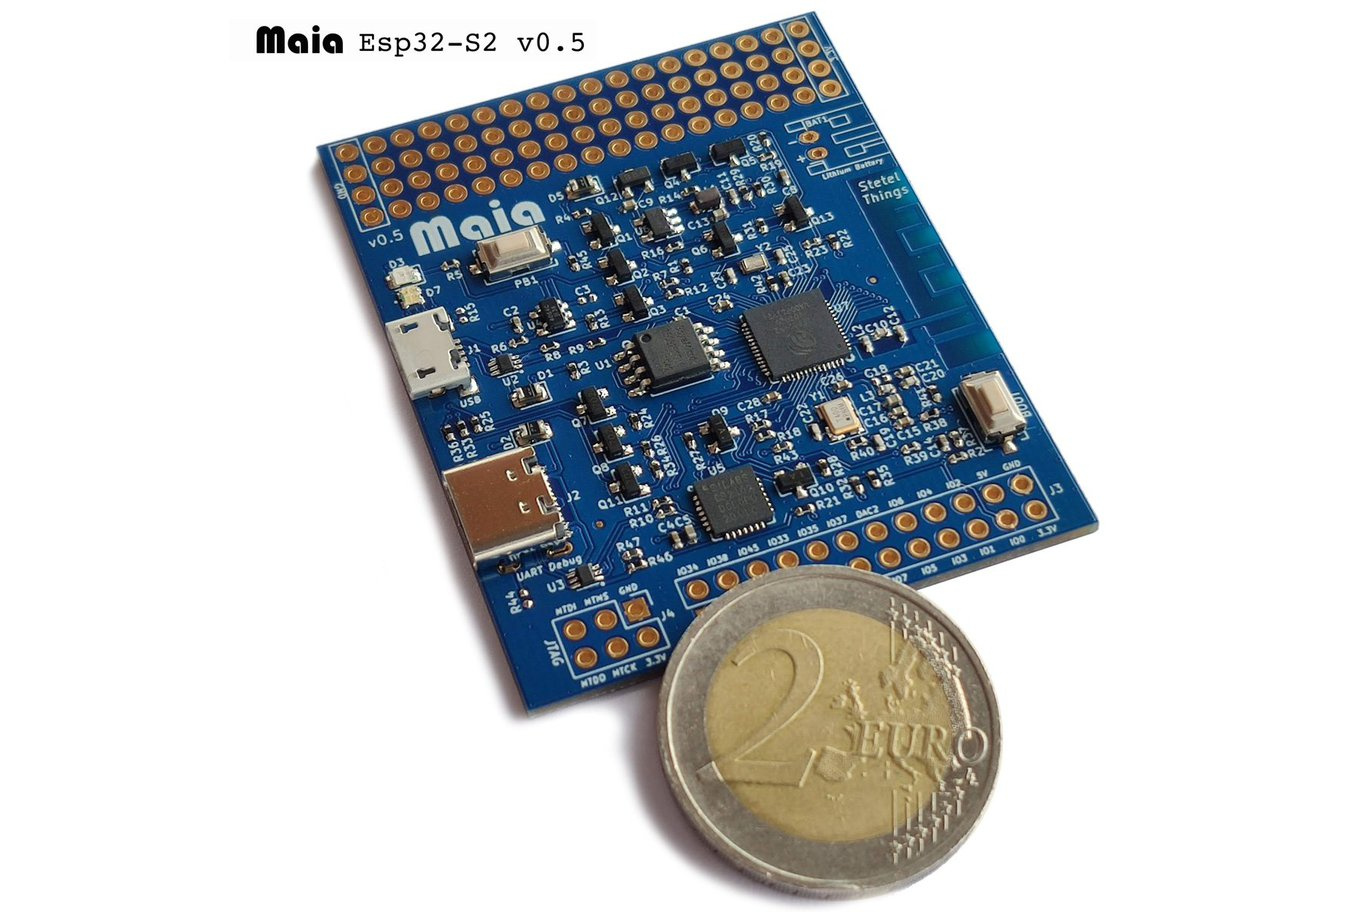 Meet the IoT-Ready, Esp32-based Maia Development Board